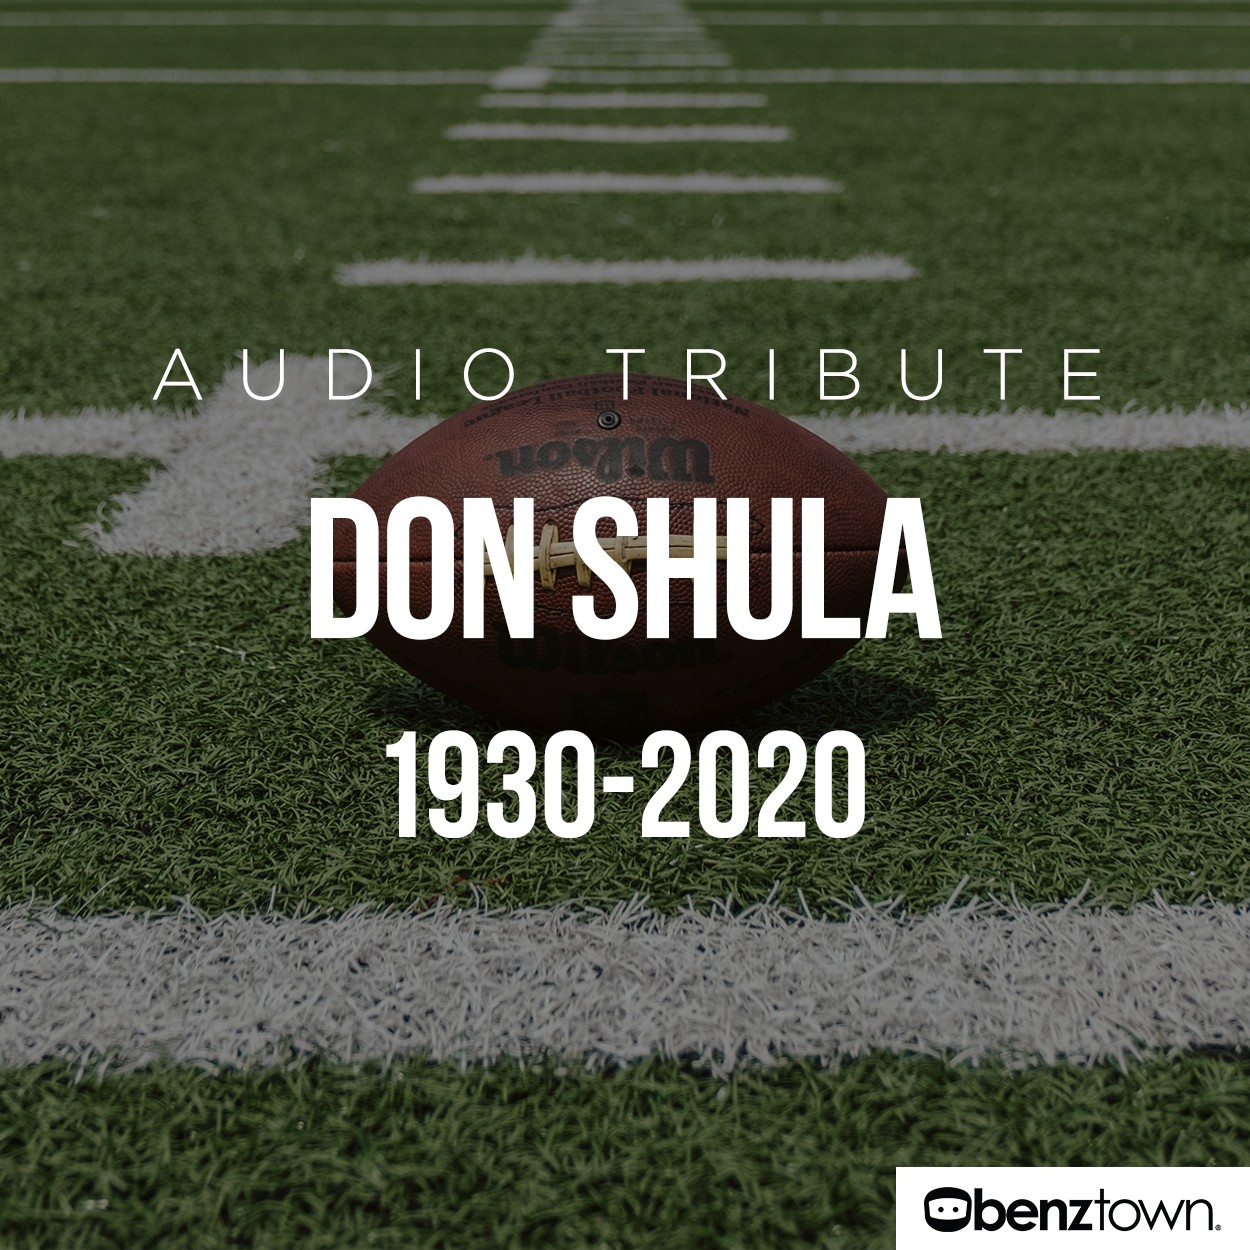 Toledoan, Super Bowl champion Curtis Johnson remembers Don Shula